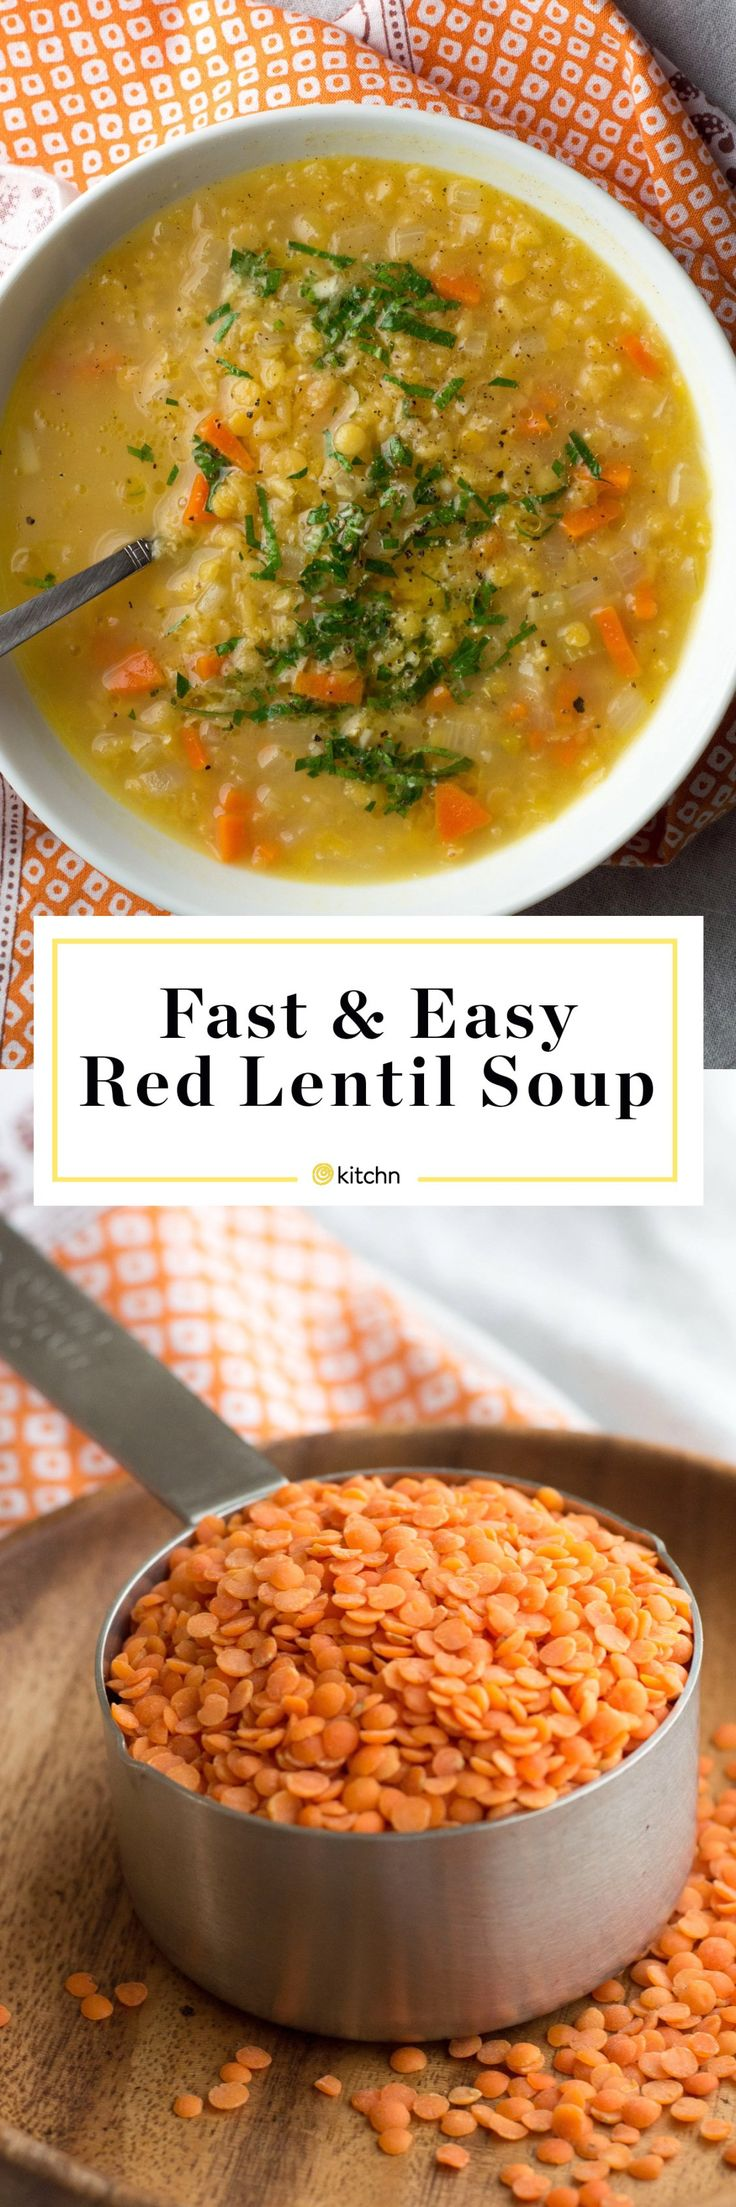 Fast and easy red lentil soup recipe. Lentil soup is simple and easy comfort food. It's my go-to when I want something hearty but healthy, or when I'm tasked with feeding vegetarian or vegan friends on a chilly day. Healthy and simple, a recipe like this one is a guaranteed crowd-pleaser. To make this easy soup recipe, you'll need olive oil, carrot, celery, onion, chicken or veggie broth and a bay leaf. Make it on the stovetop or stove top.